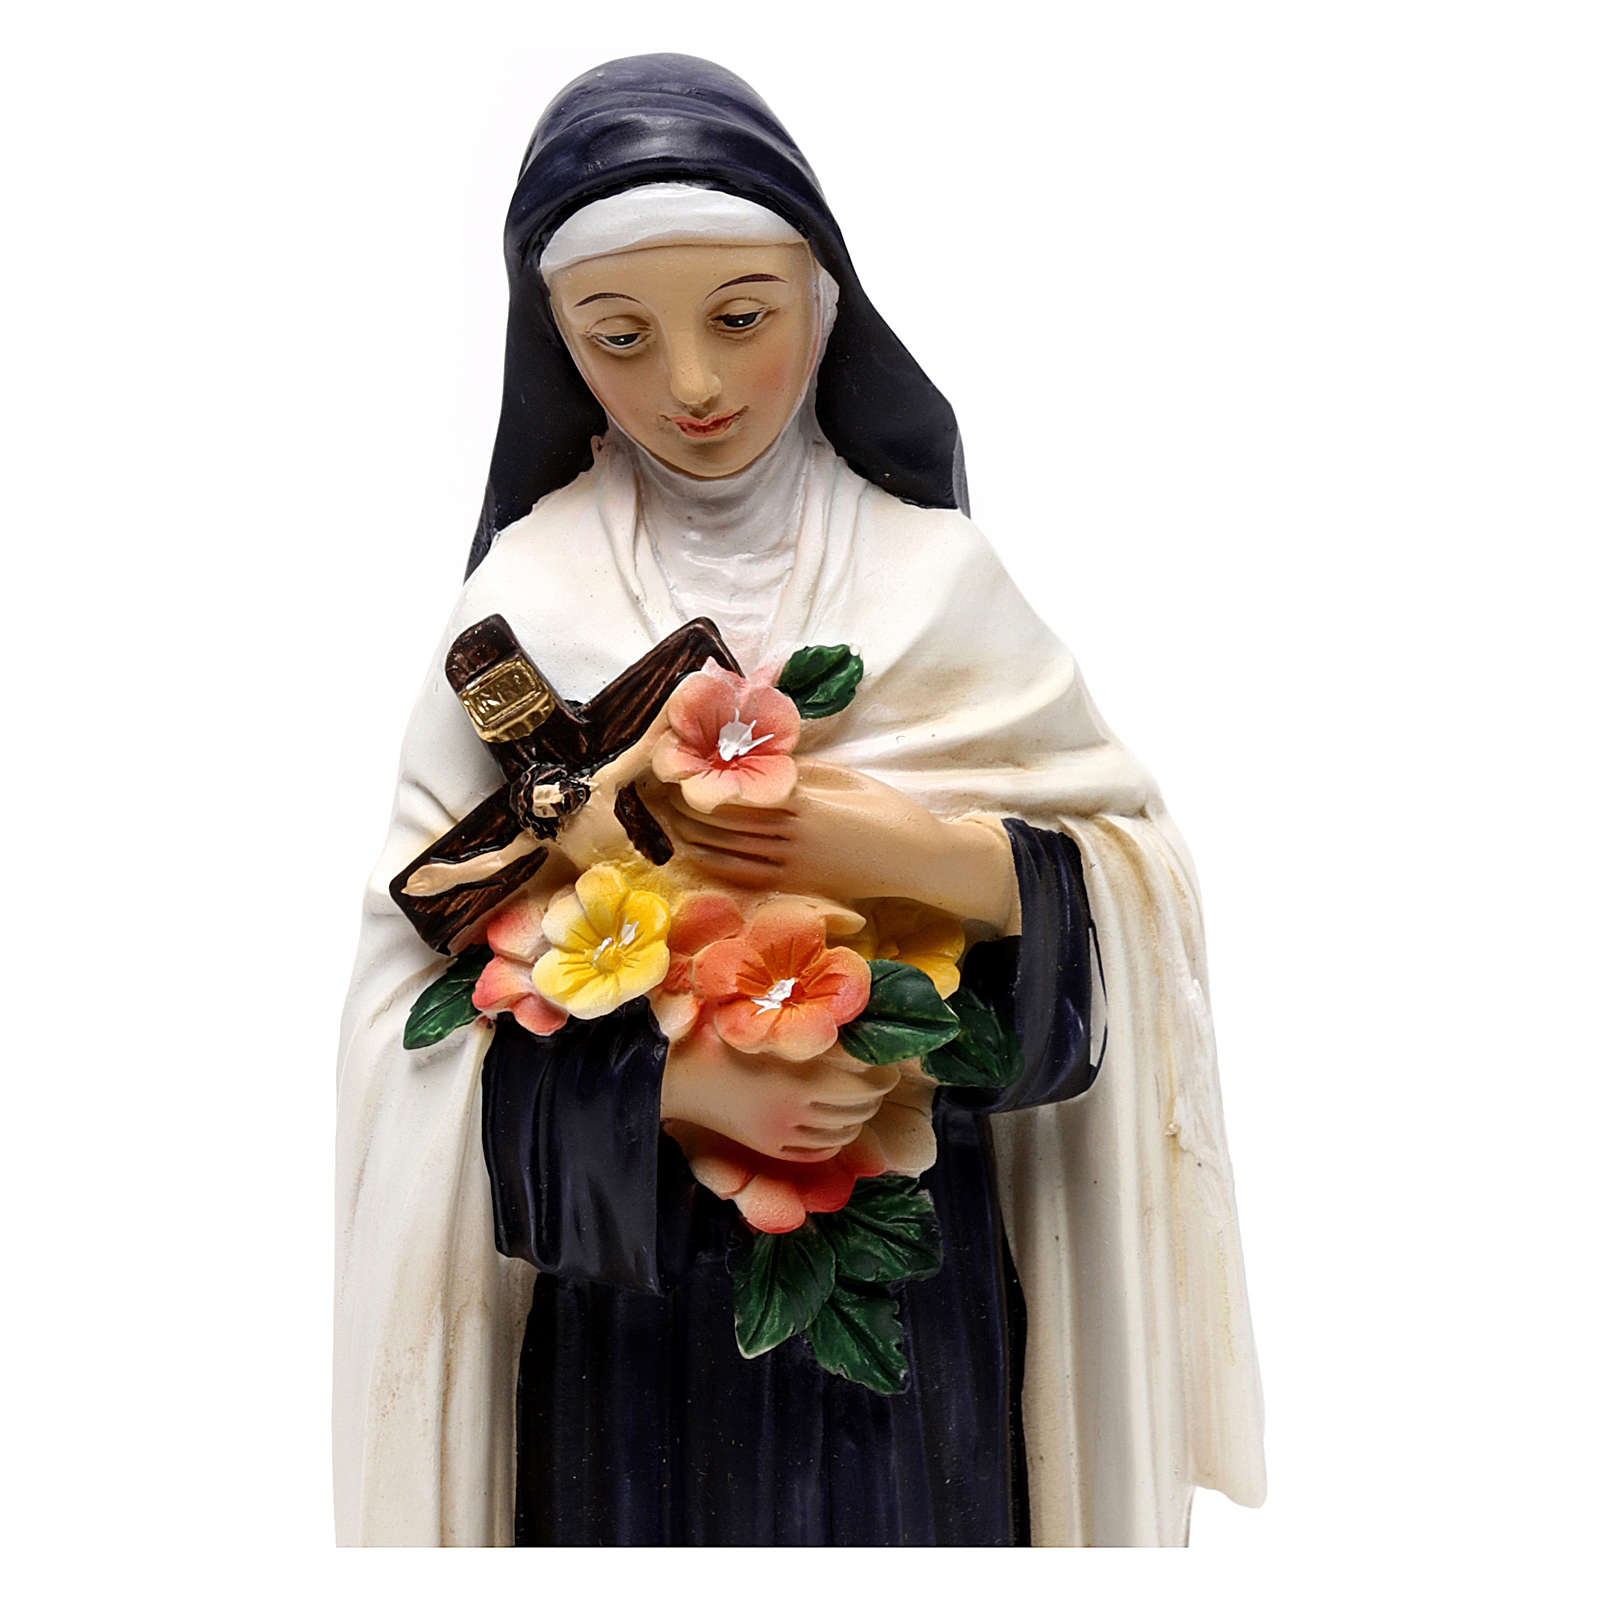 Saint Theresa 20 cm in colored resin 4